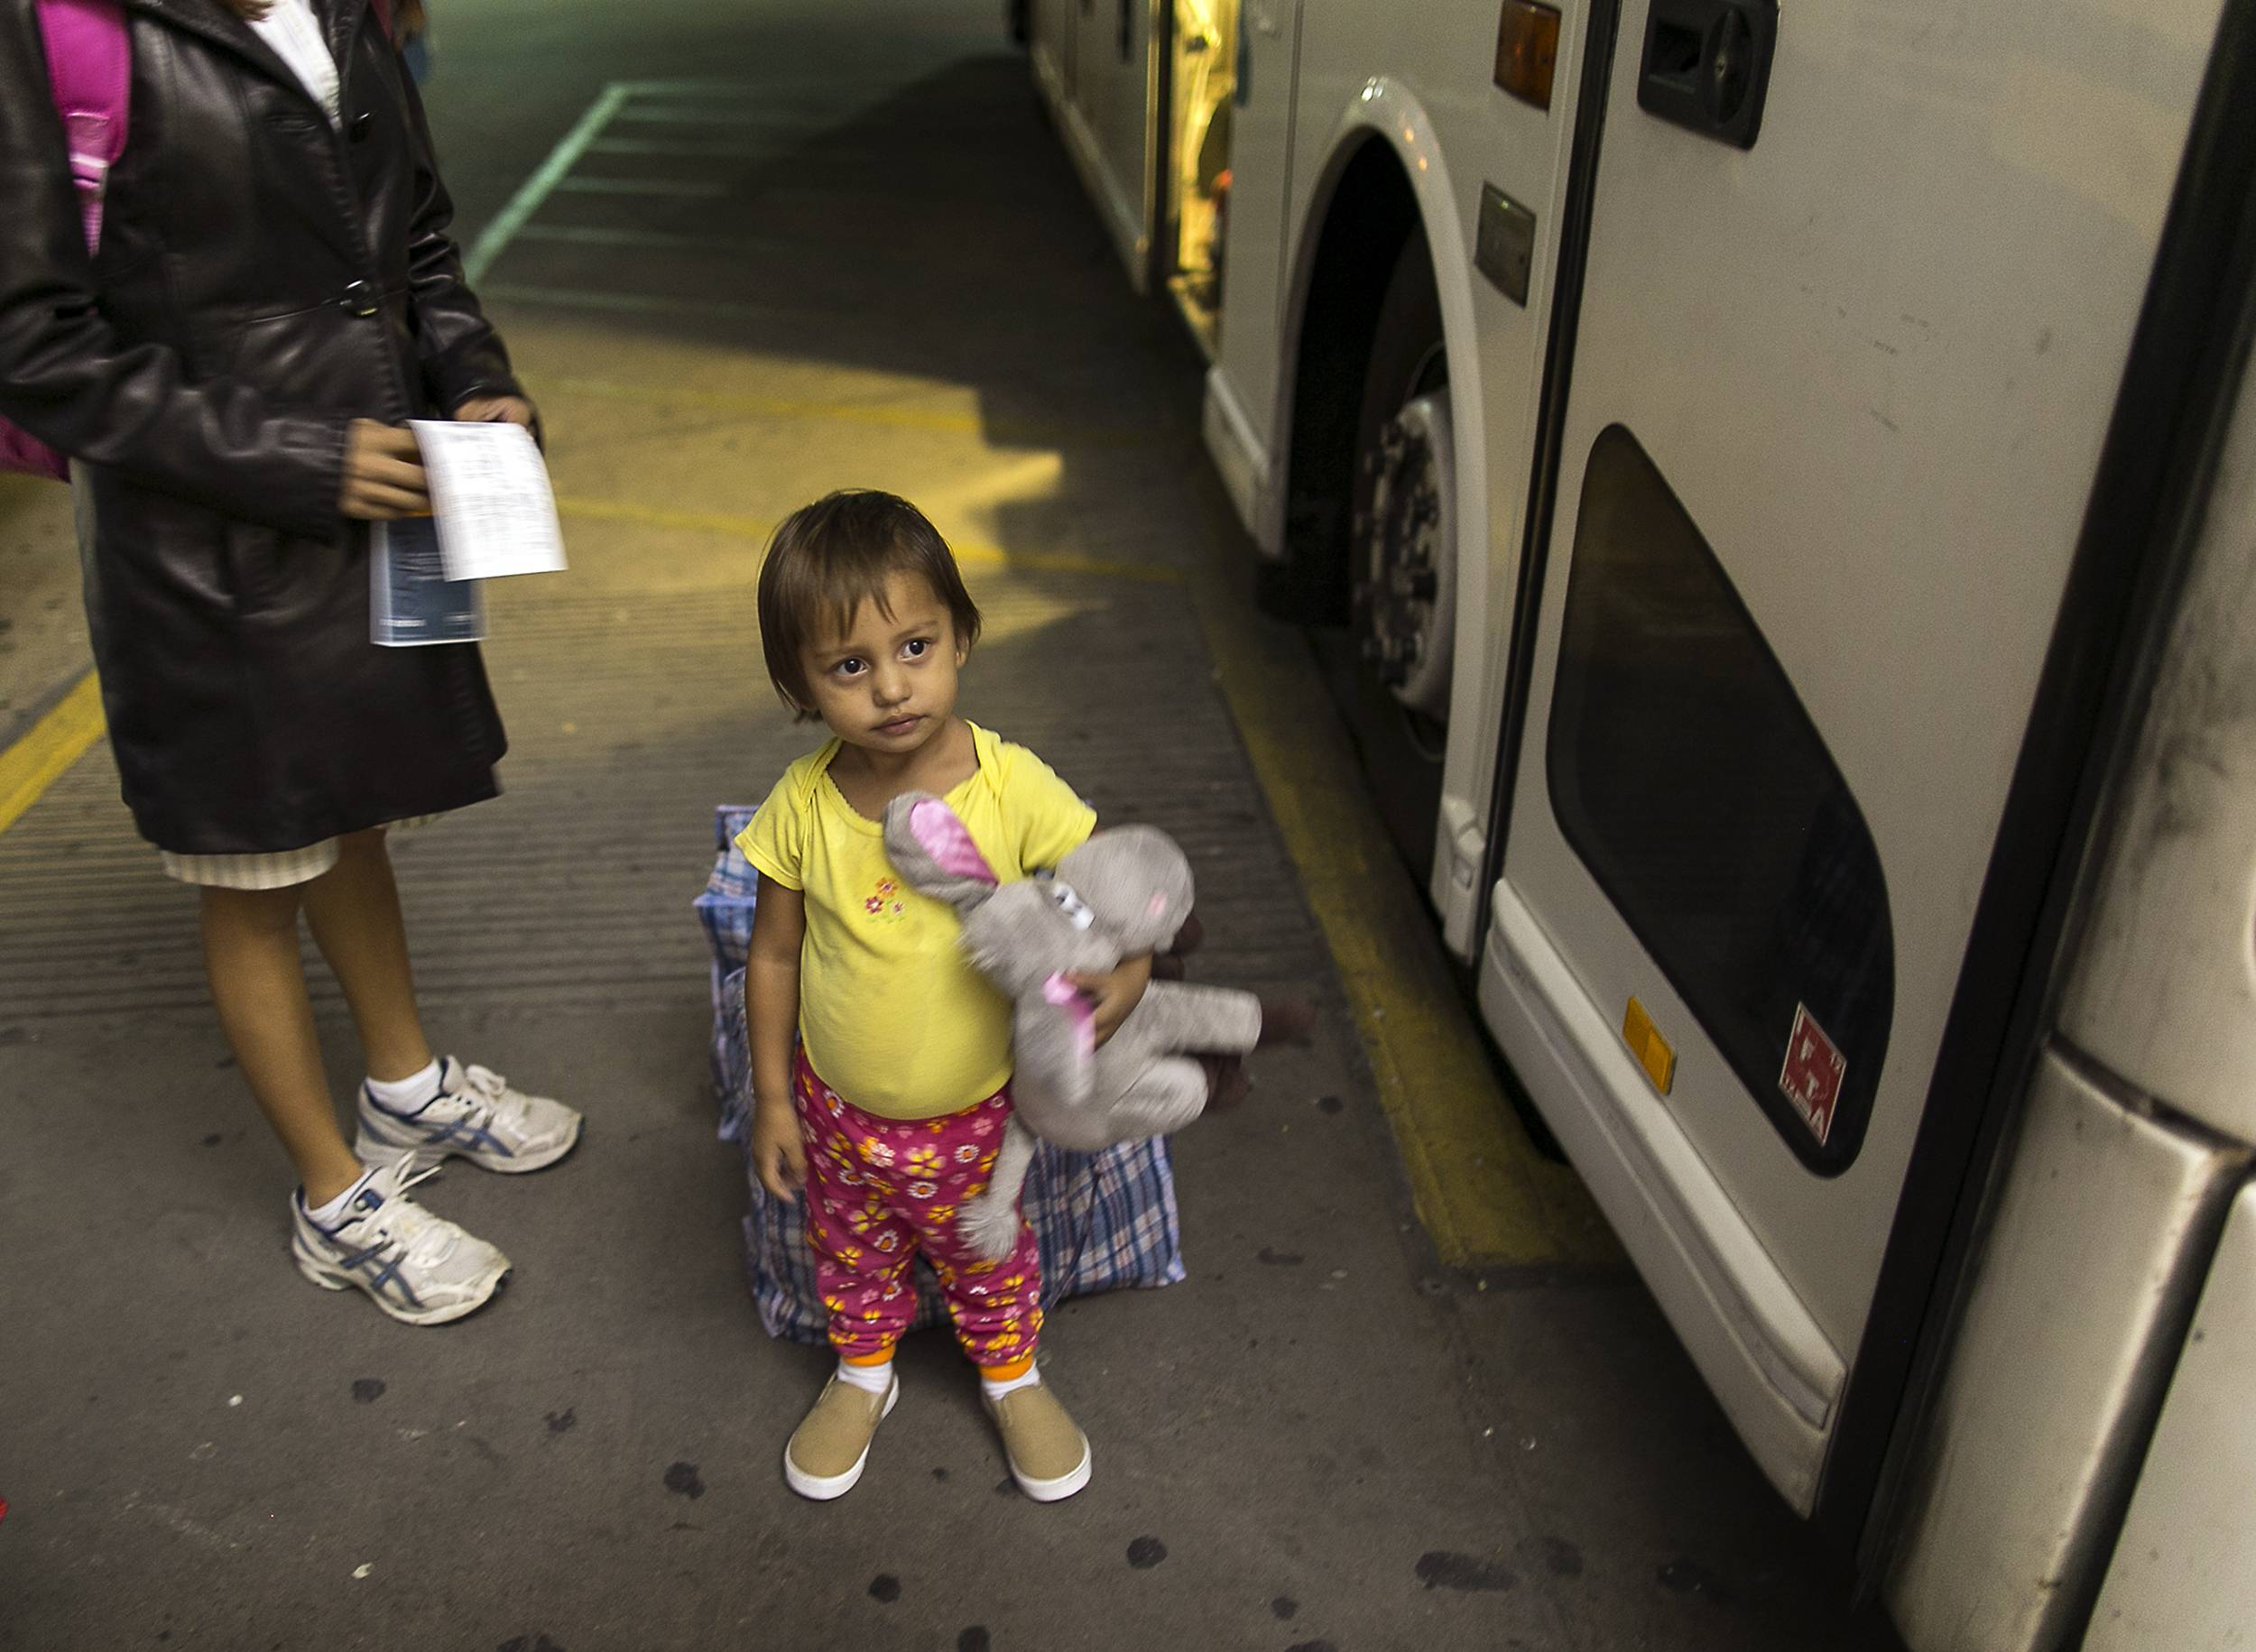 Two-year-old Adriana Ortez holds her stuffed animal, as she and her mother, Dayana Ortez, of El Salvador, wait to board a bus leaving the city bus station in McAllen, Texas, July 1. Ortez and her daughter were released on their own recognizance by U.S. Customs and Border Protection Services after entering the illegally into the U.S. from Mexico. The mother and daughter were heading to Los Angles to reunite with family.